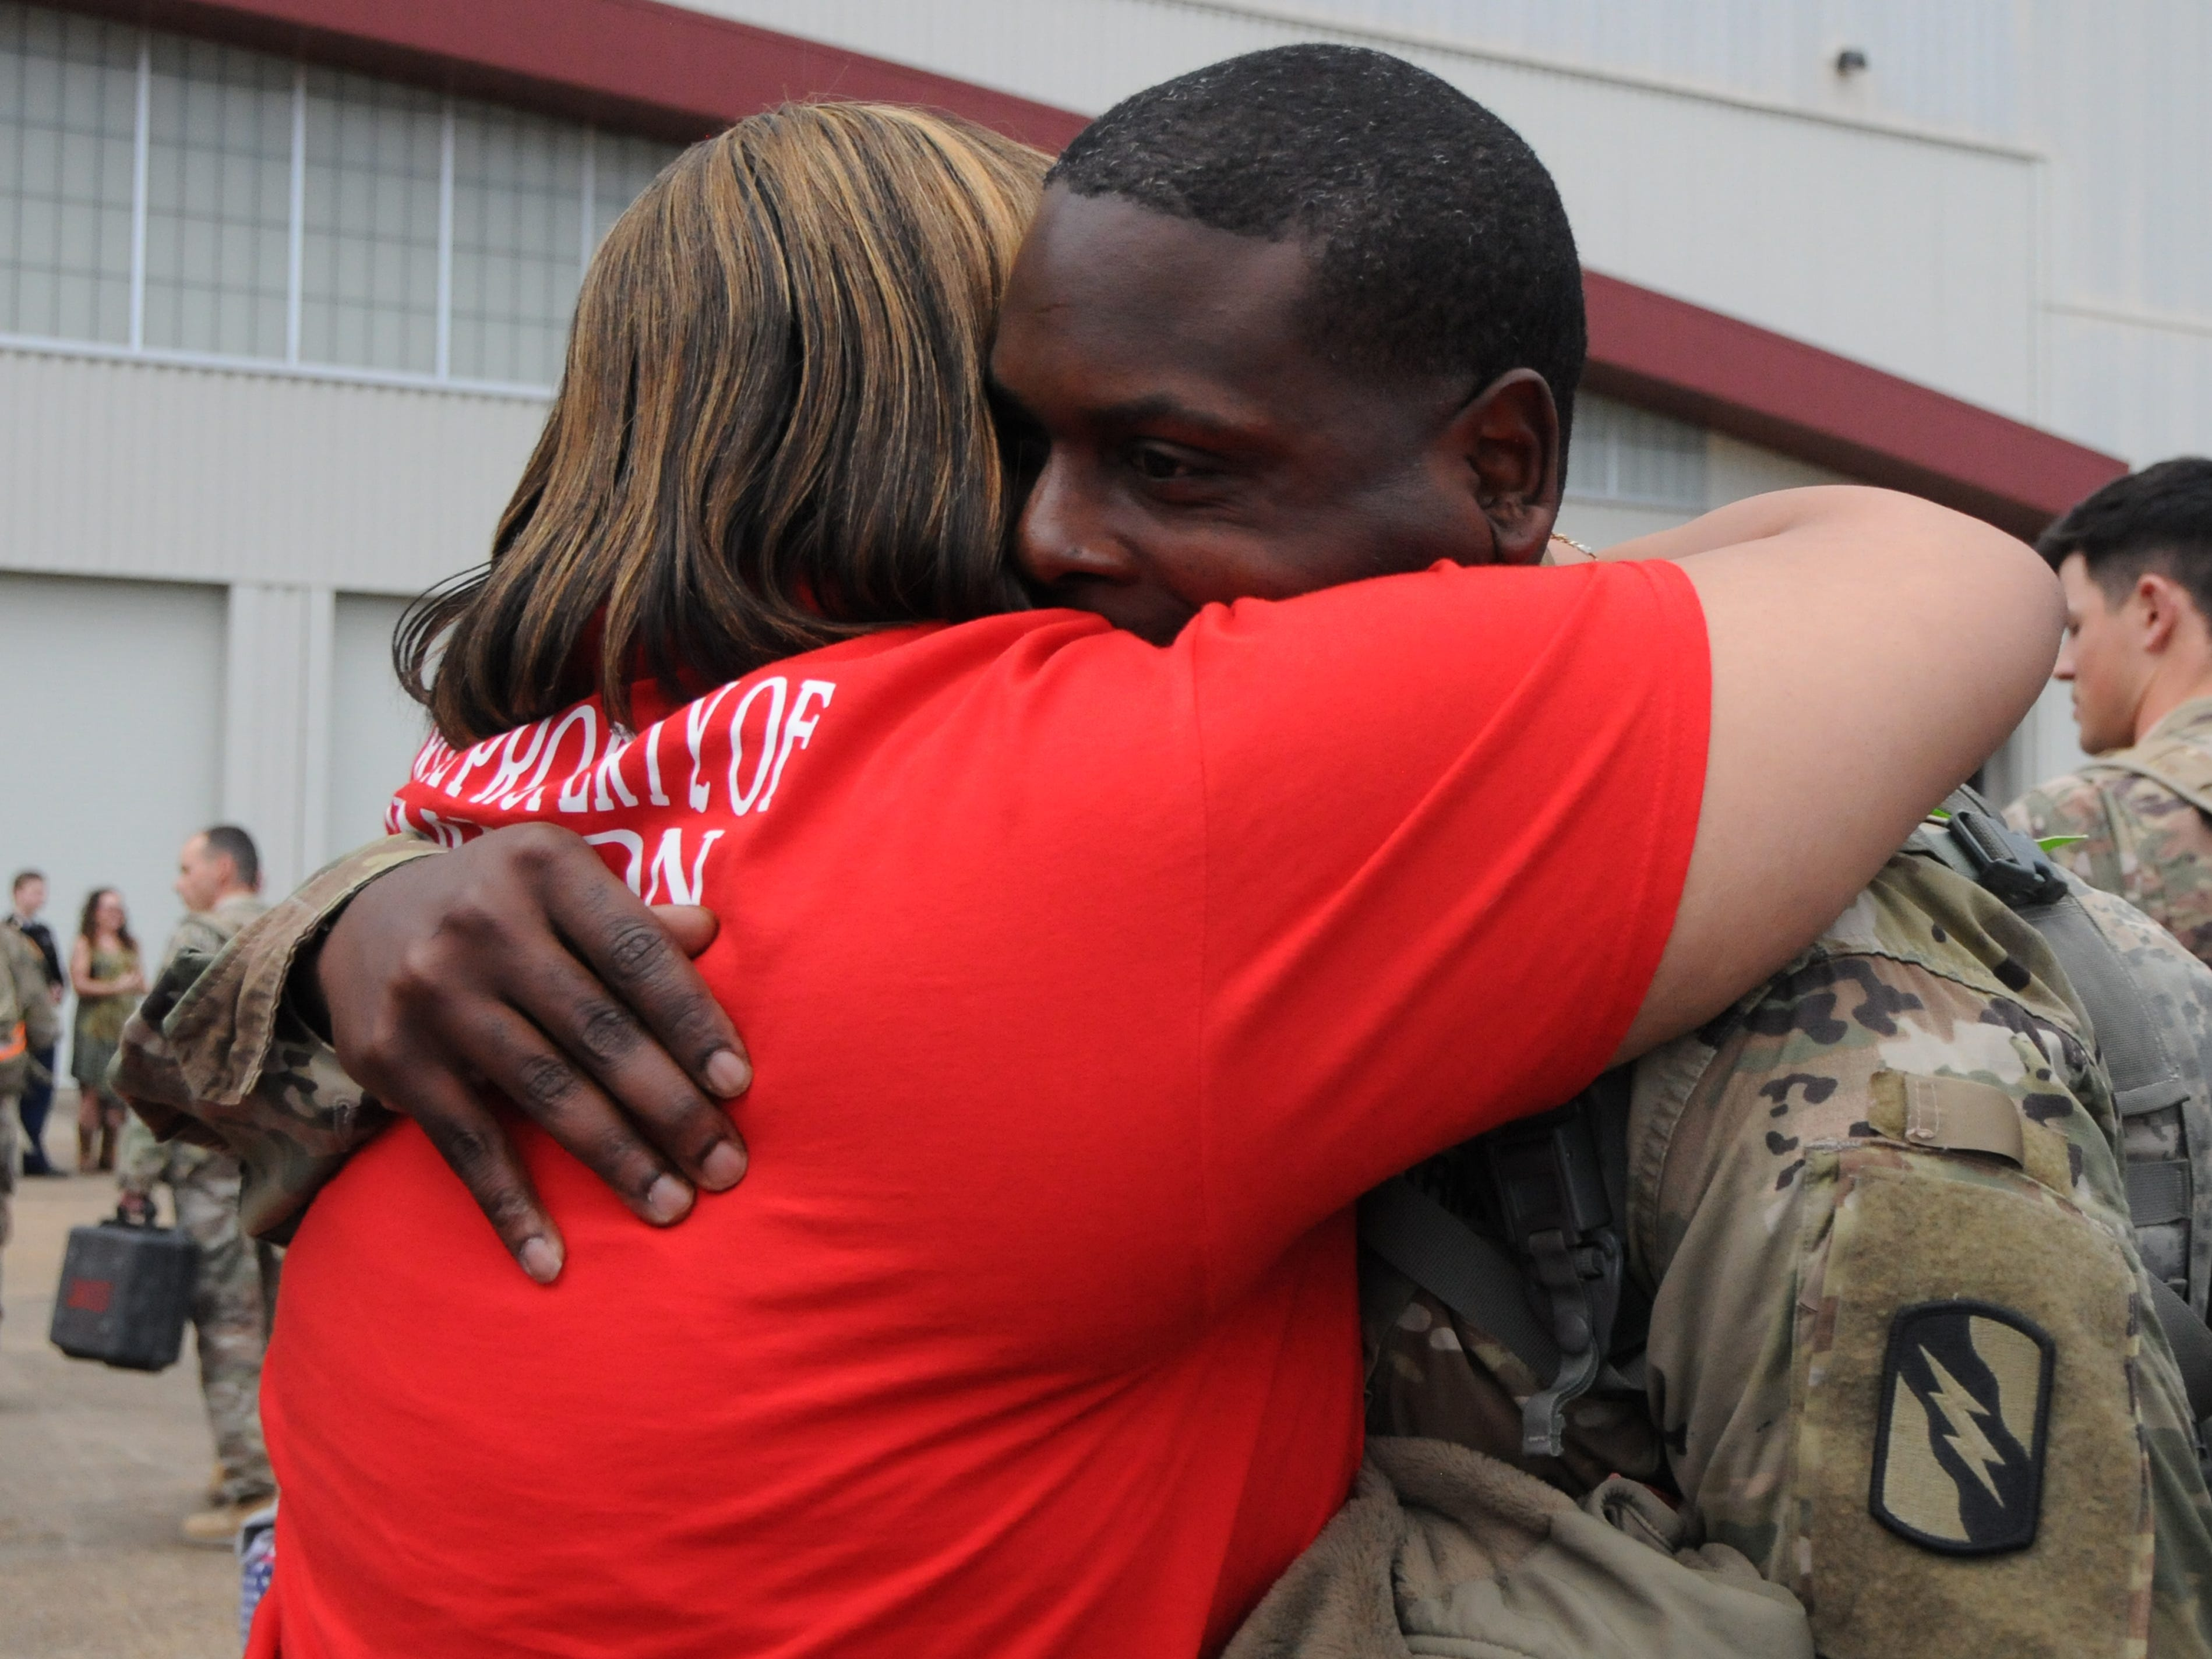 Spc. Earnest Jimison, of DeKalb, greets a loved one at Thompson Field in Flowood, Miss., Feb. 27, 2019. Jimison, was part of a contingent of the Mississippi Army National Guard's 155th Armored Brigade Combat Team returning home after serving in Kuwait in support of Operation Spartan Shield for approximately one year.